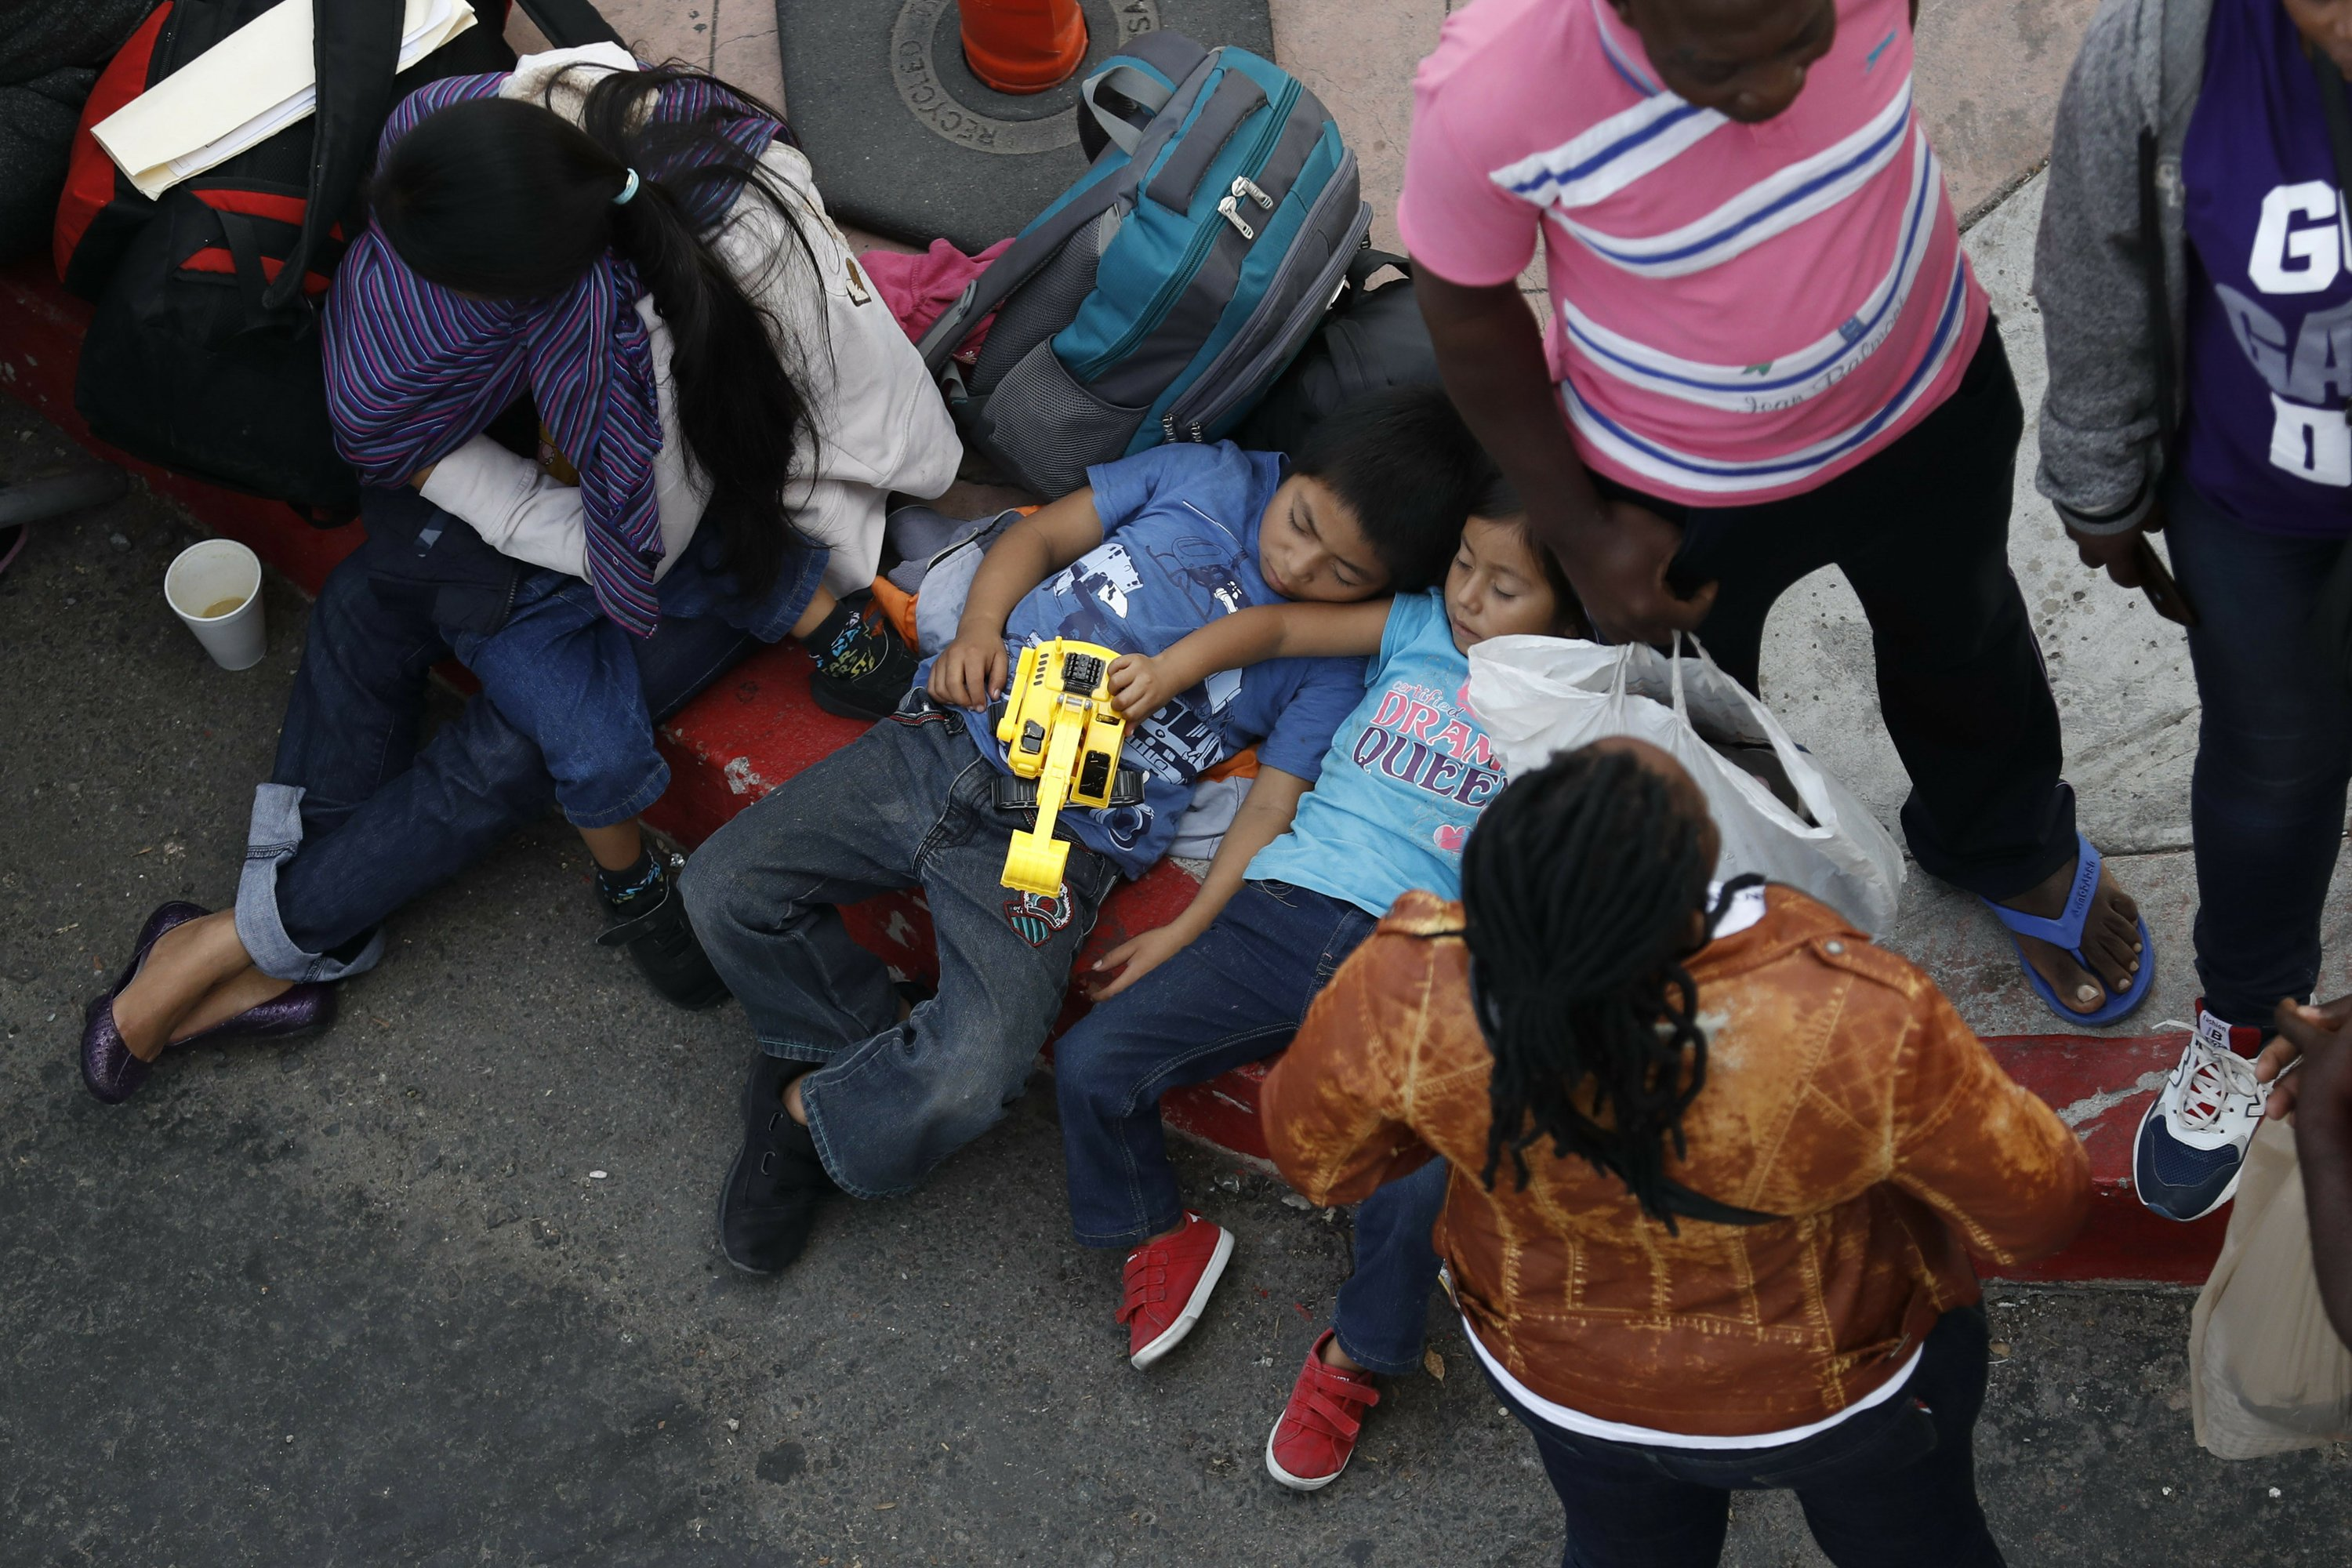 Trump's new asylum rules go into effect, and opponents sue